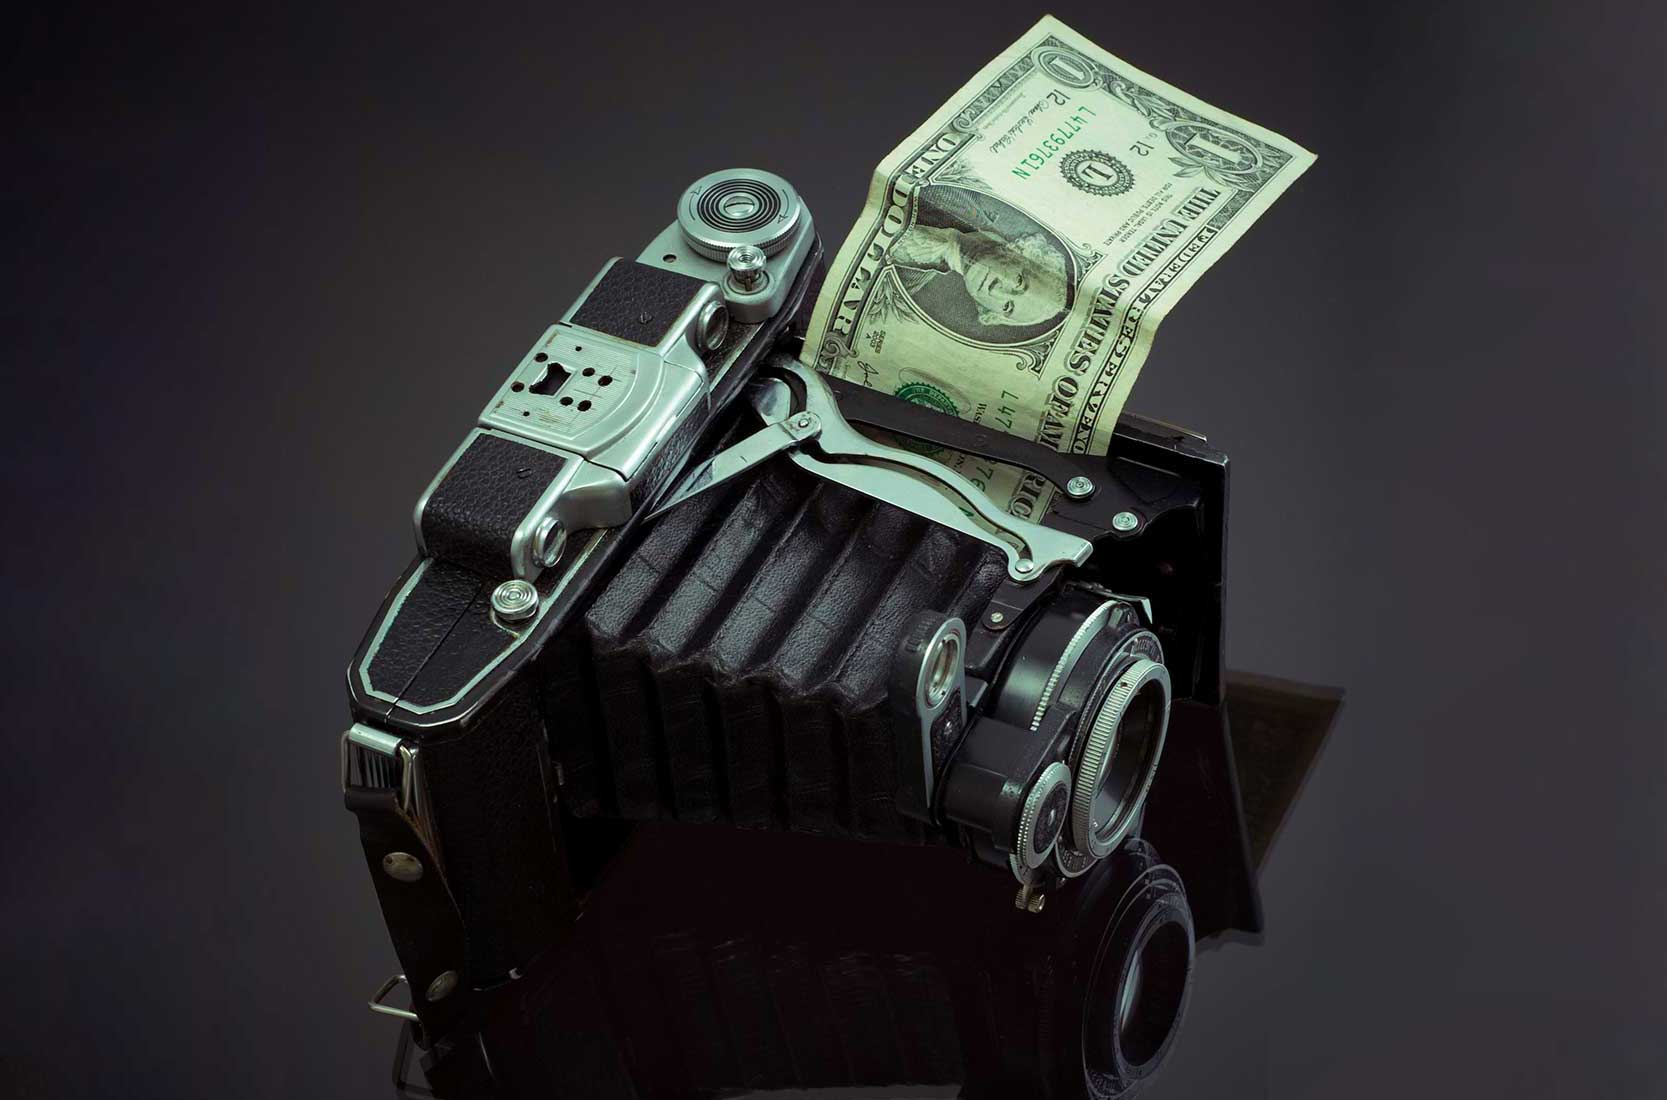 Vintage camera with a dollar bill sticking out